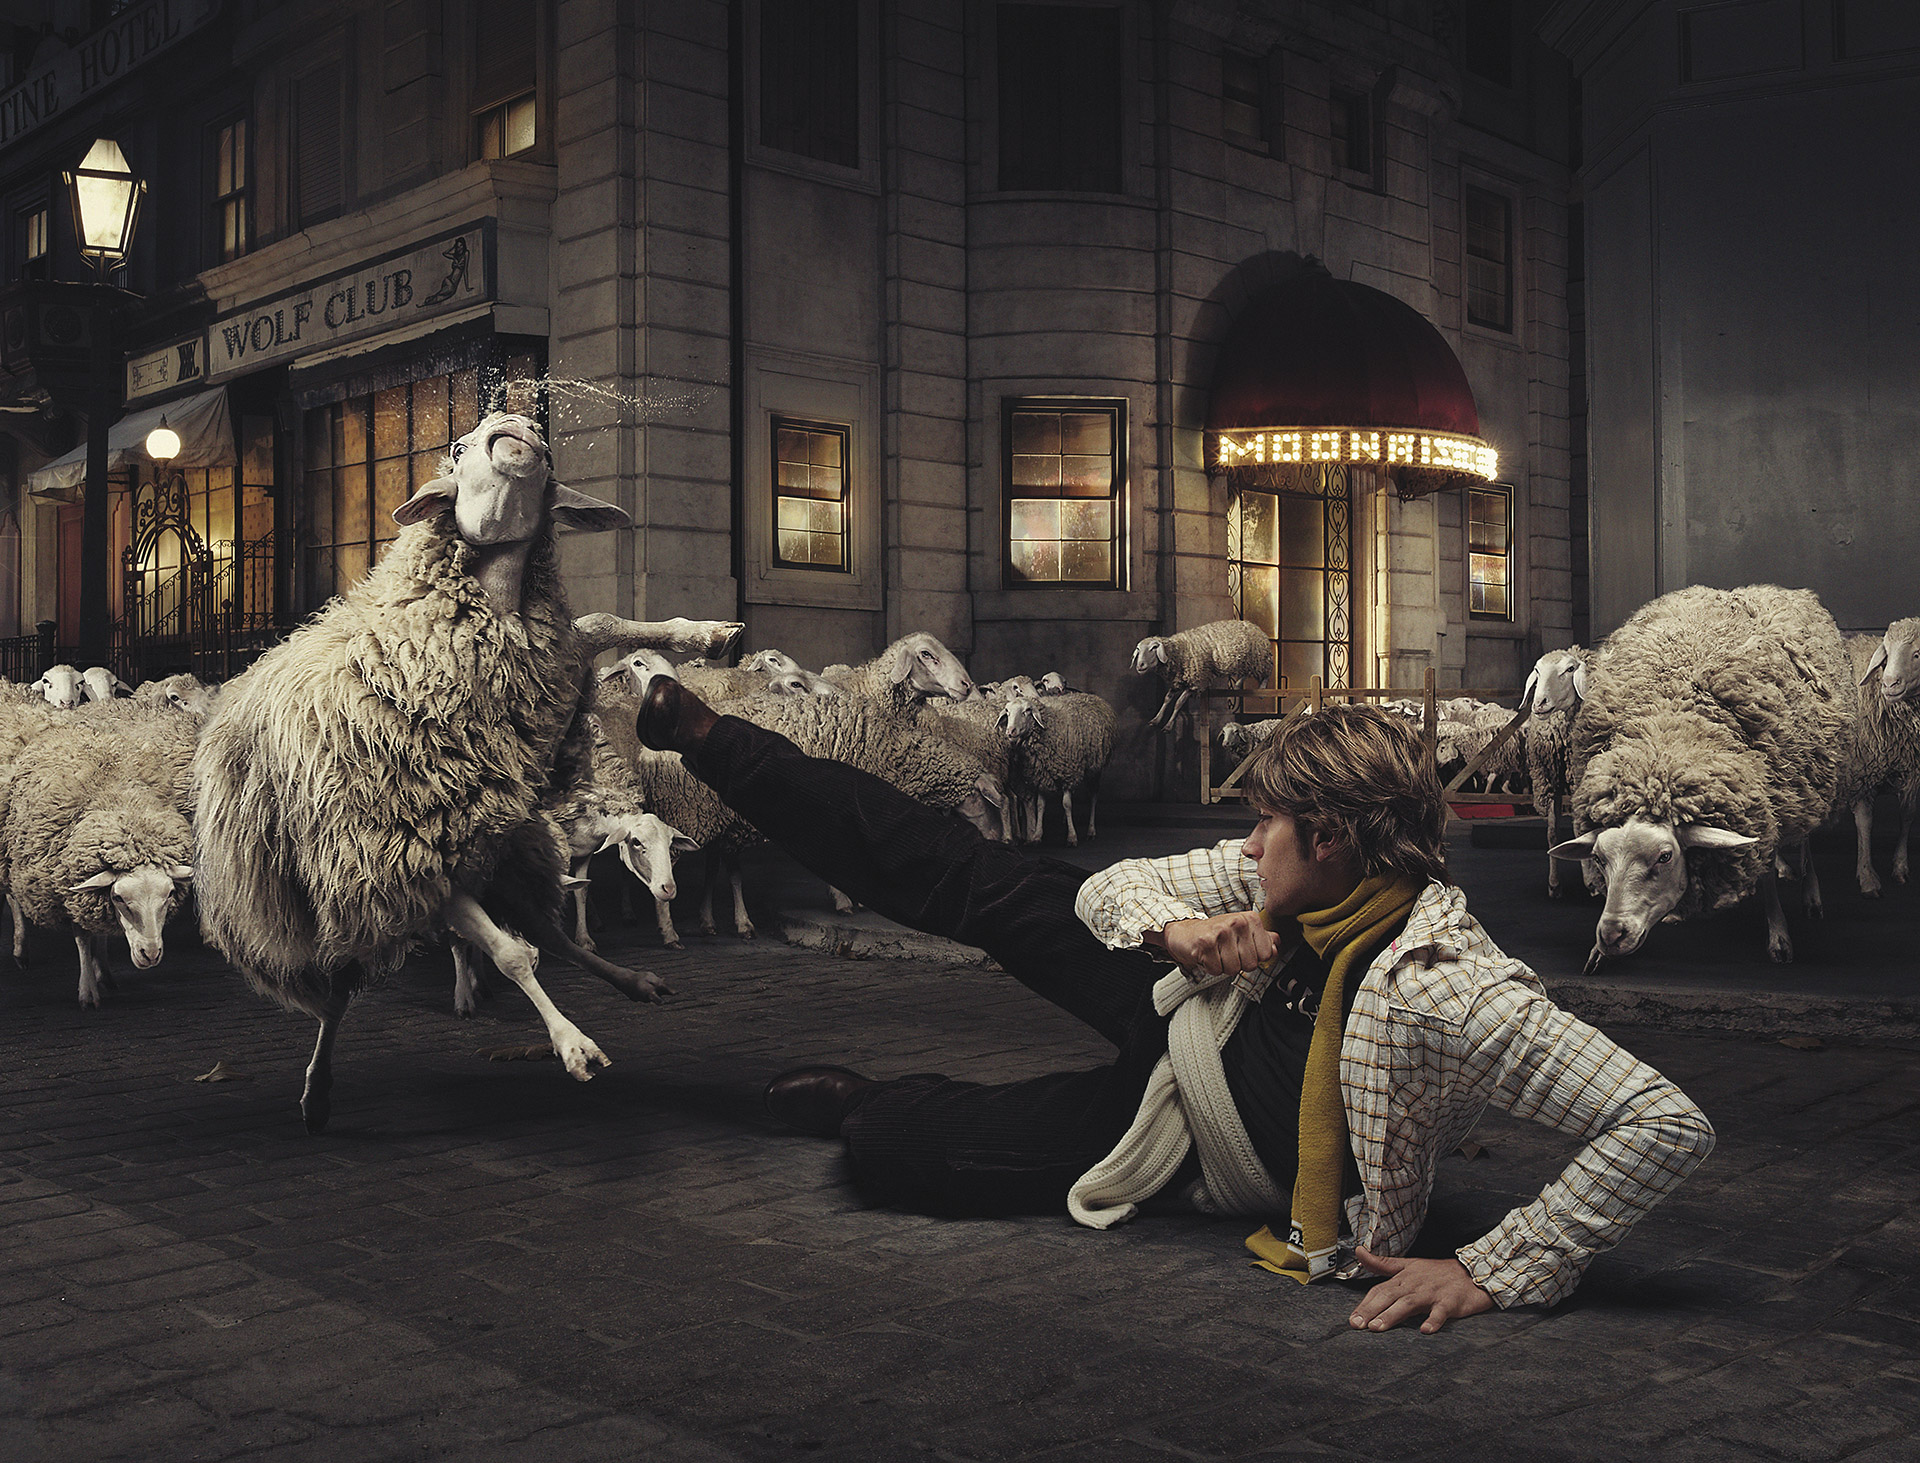 The collection of conceptual advertising photographs by Riccardo Bagnoli (10)